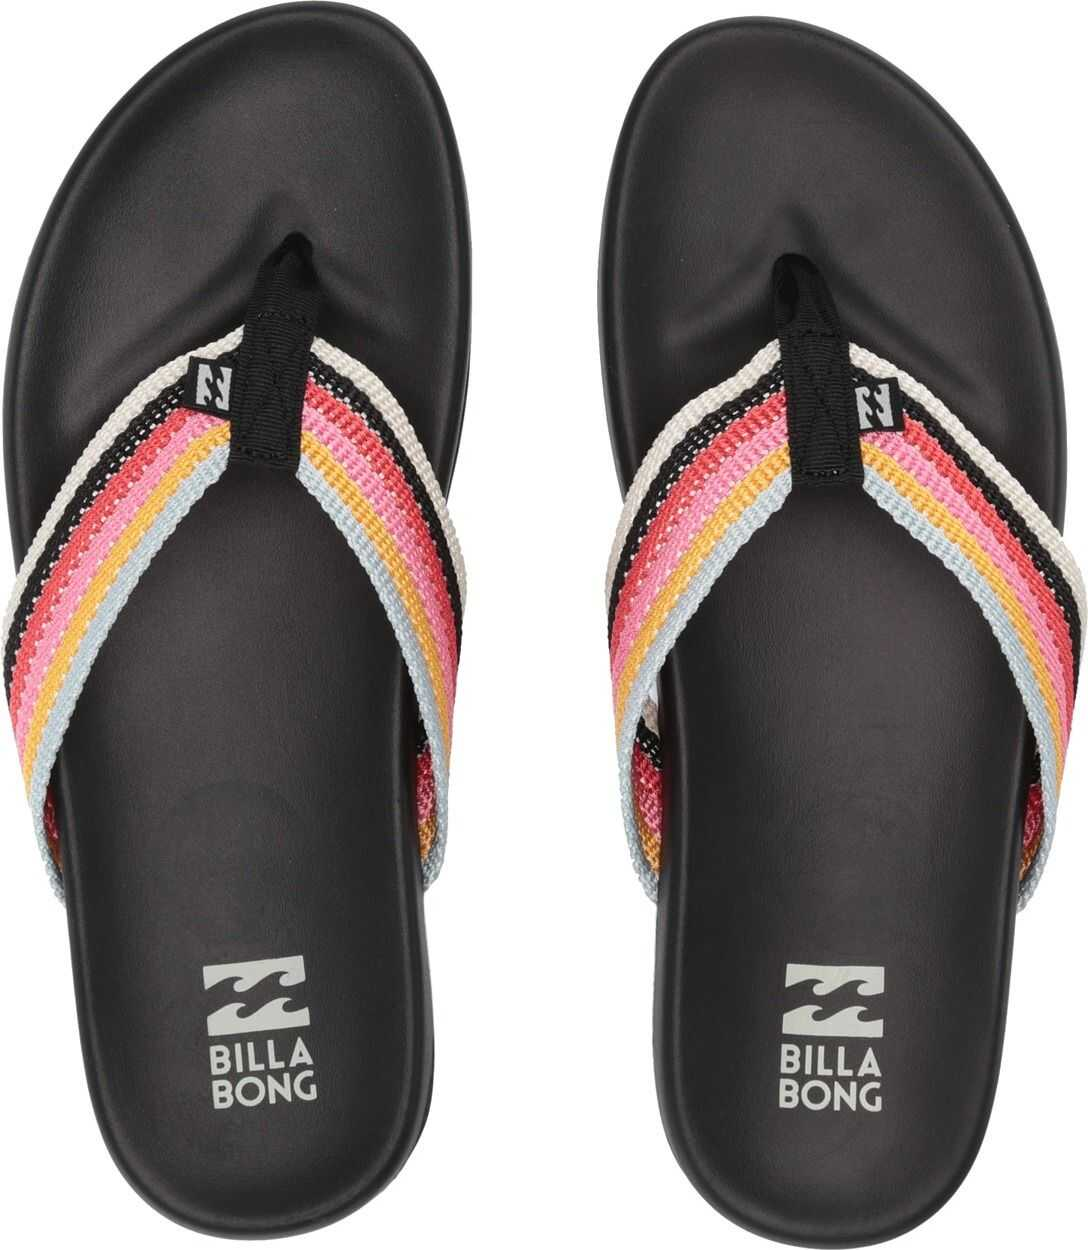 Billabong Beach Club Multi